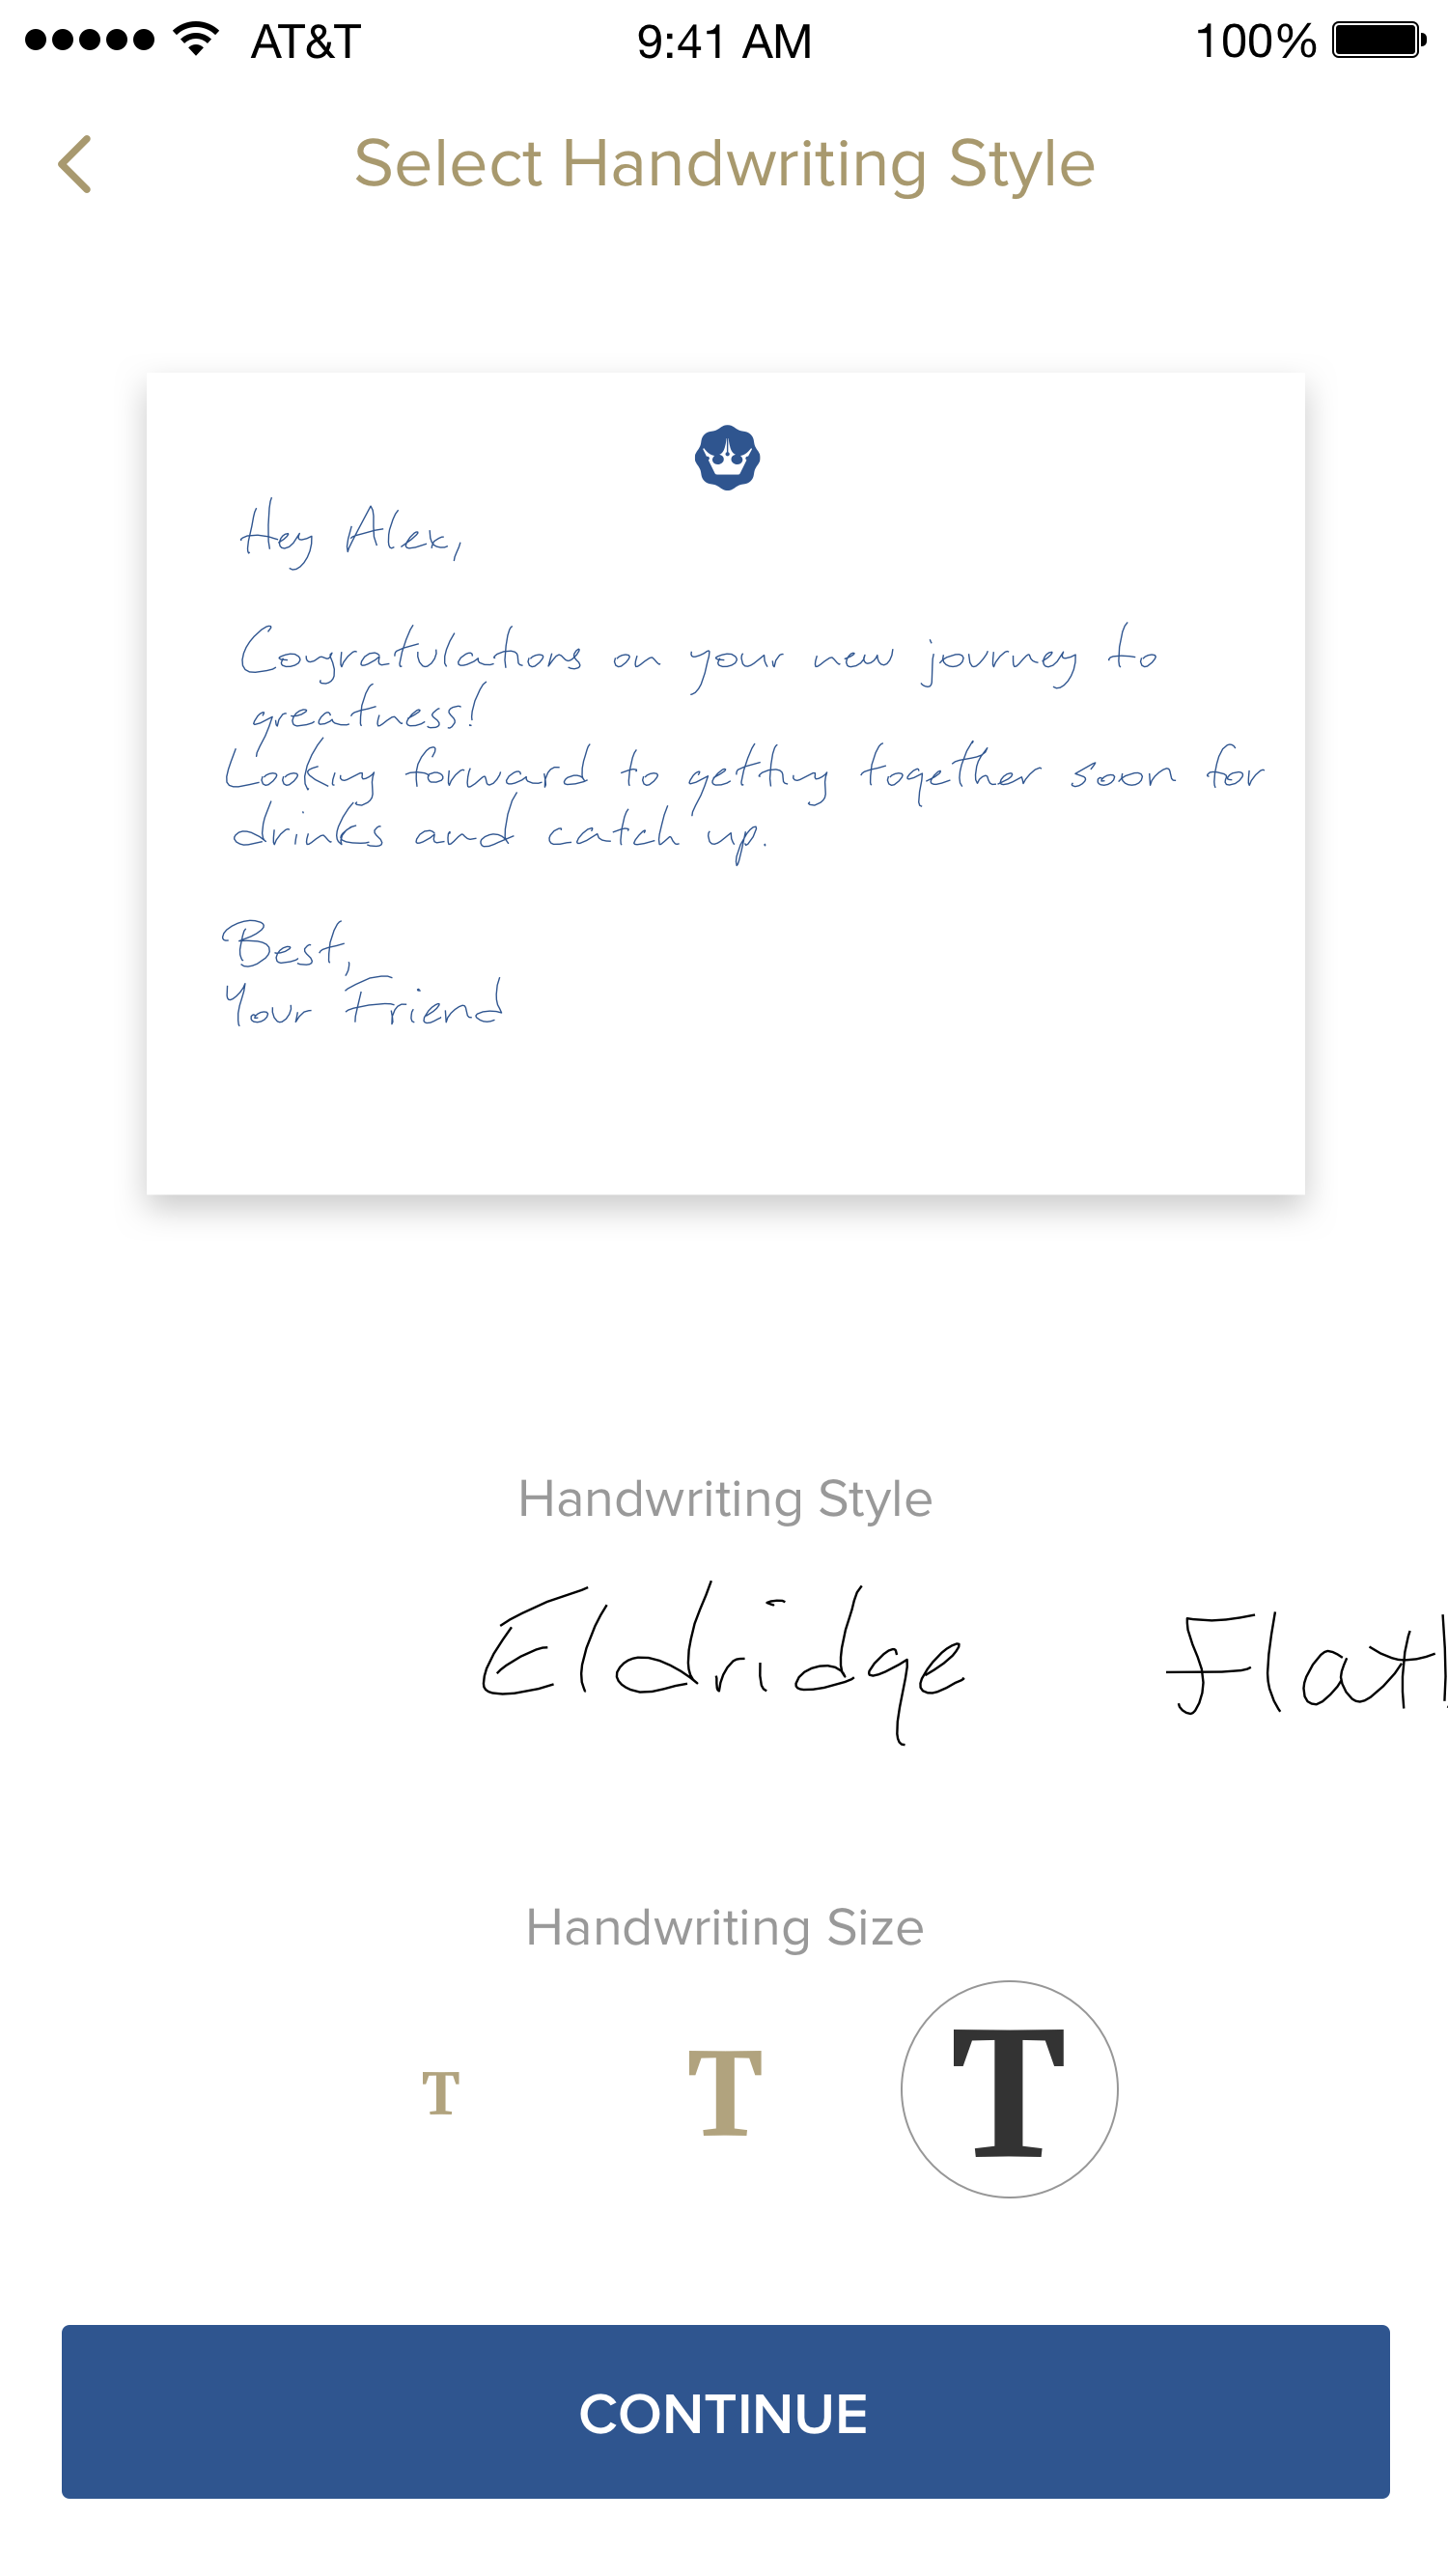 Bond - Send Handwritten Notes Online